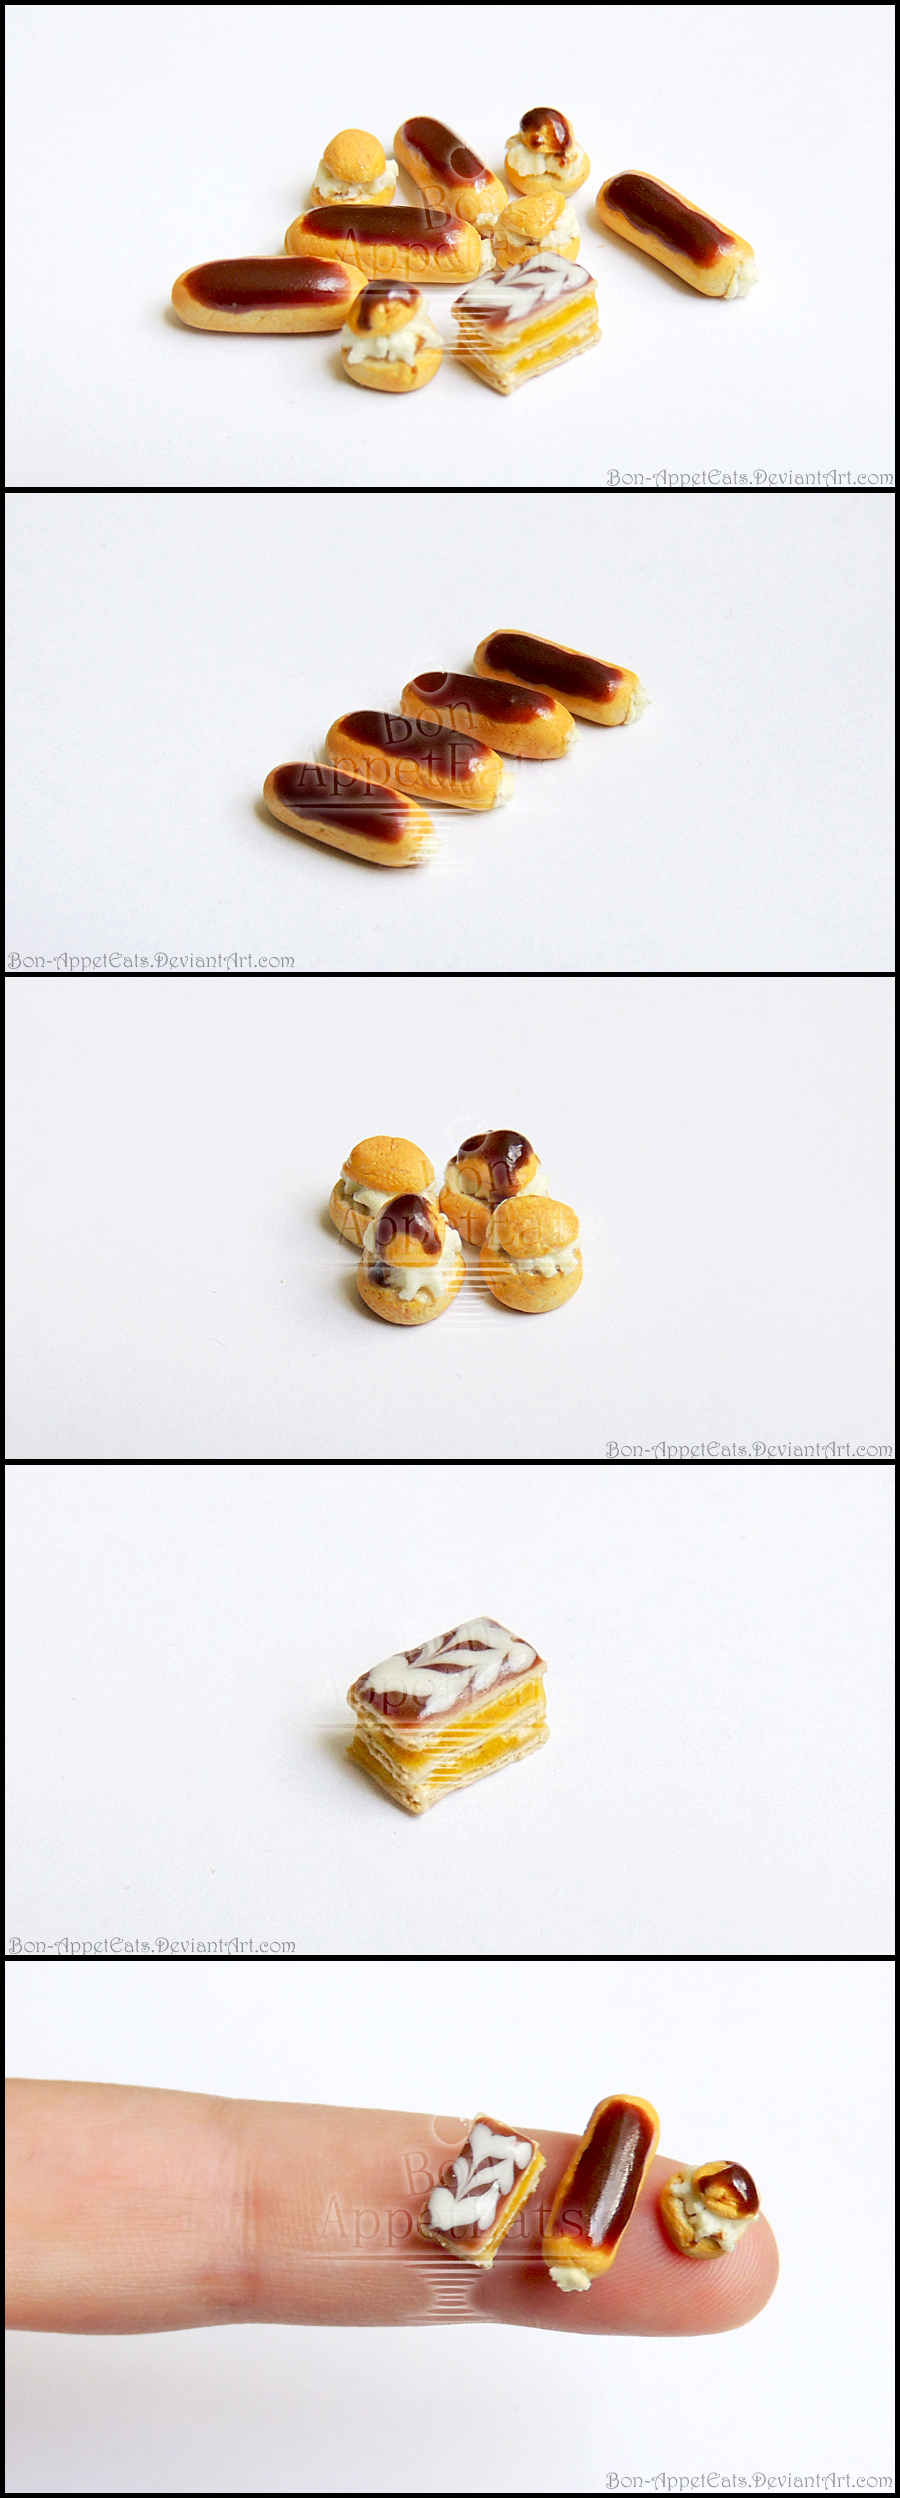 Miniature Pastries by Bon-AppetEats